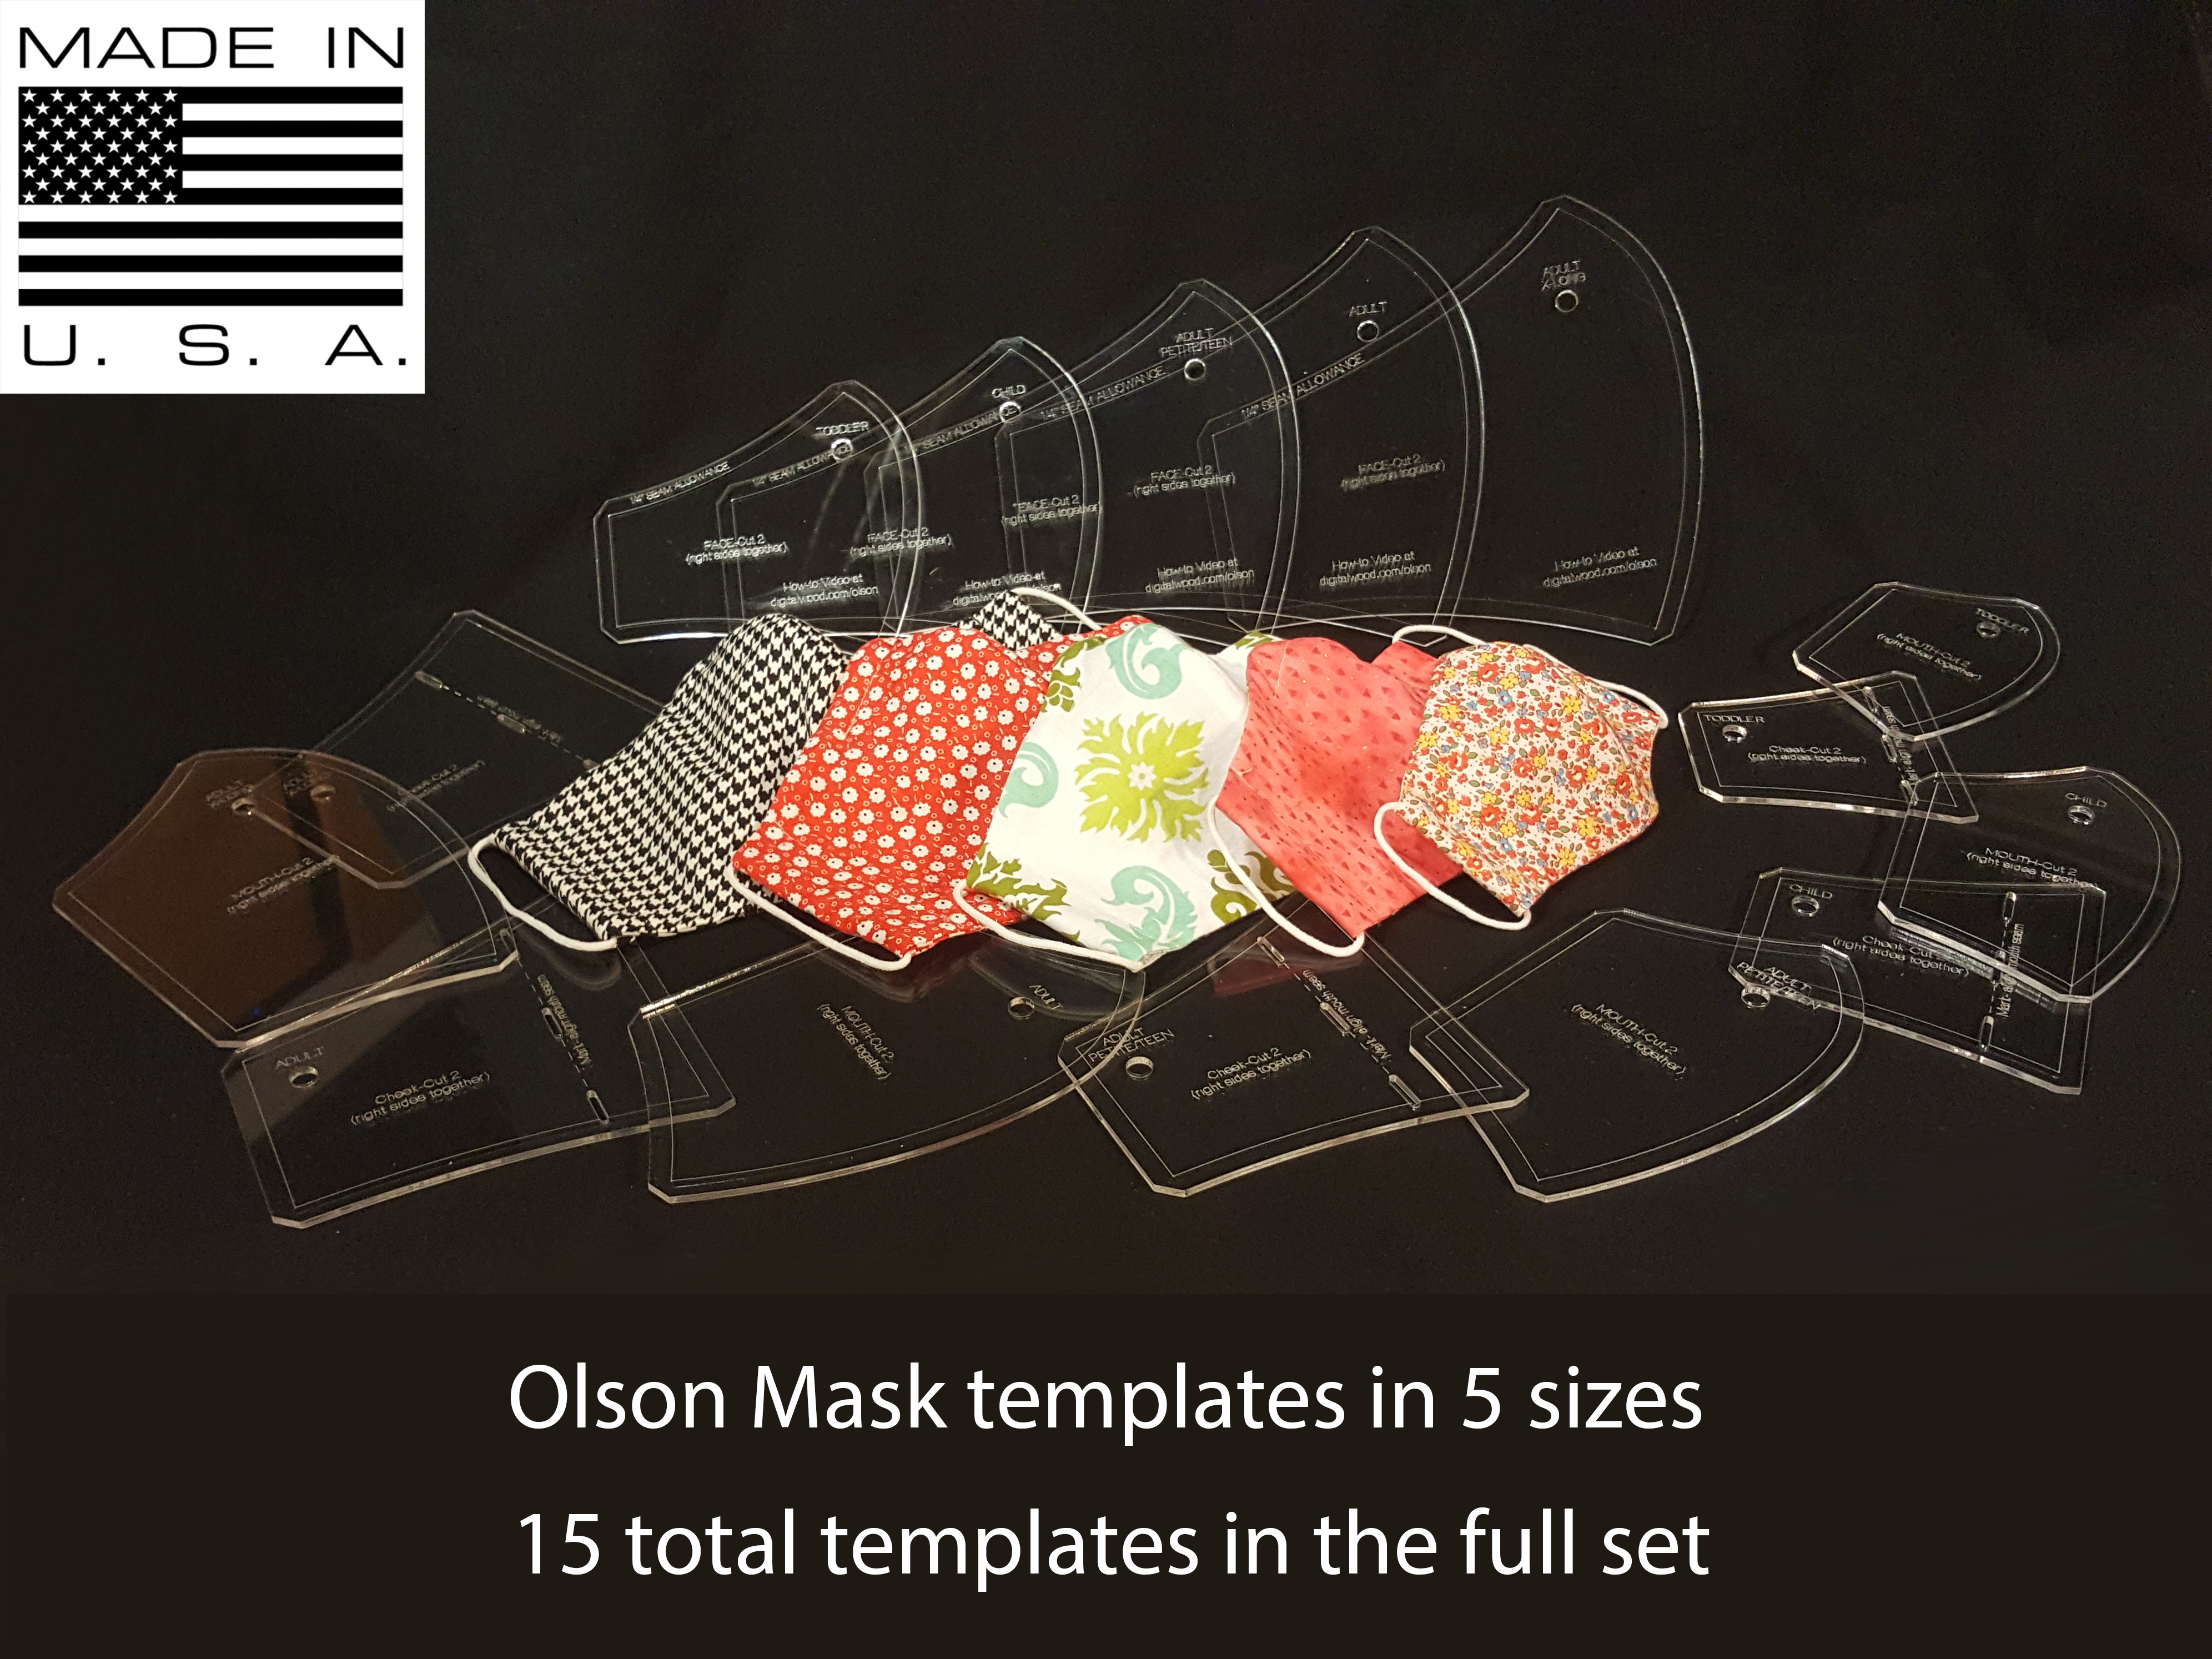 Olson Face Mask Templates